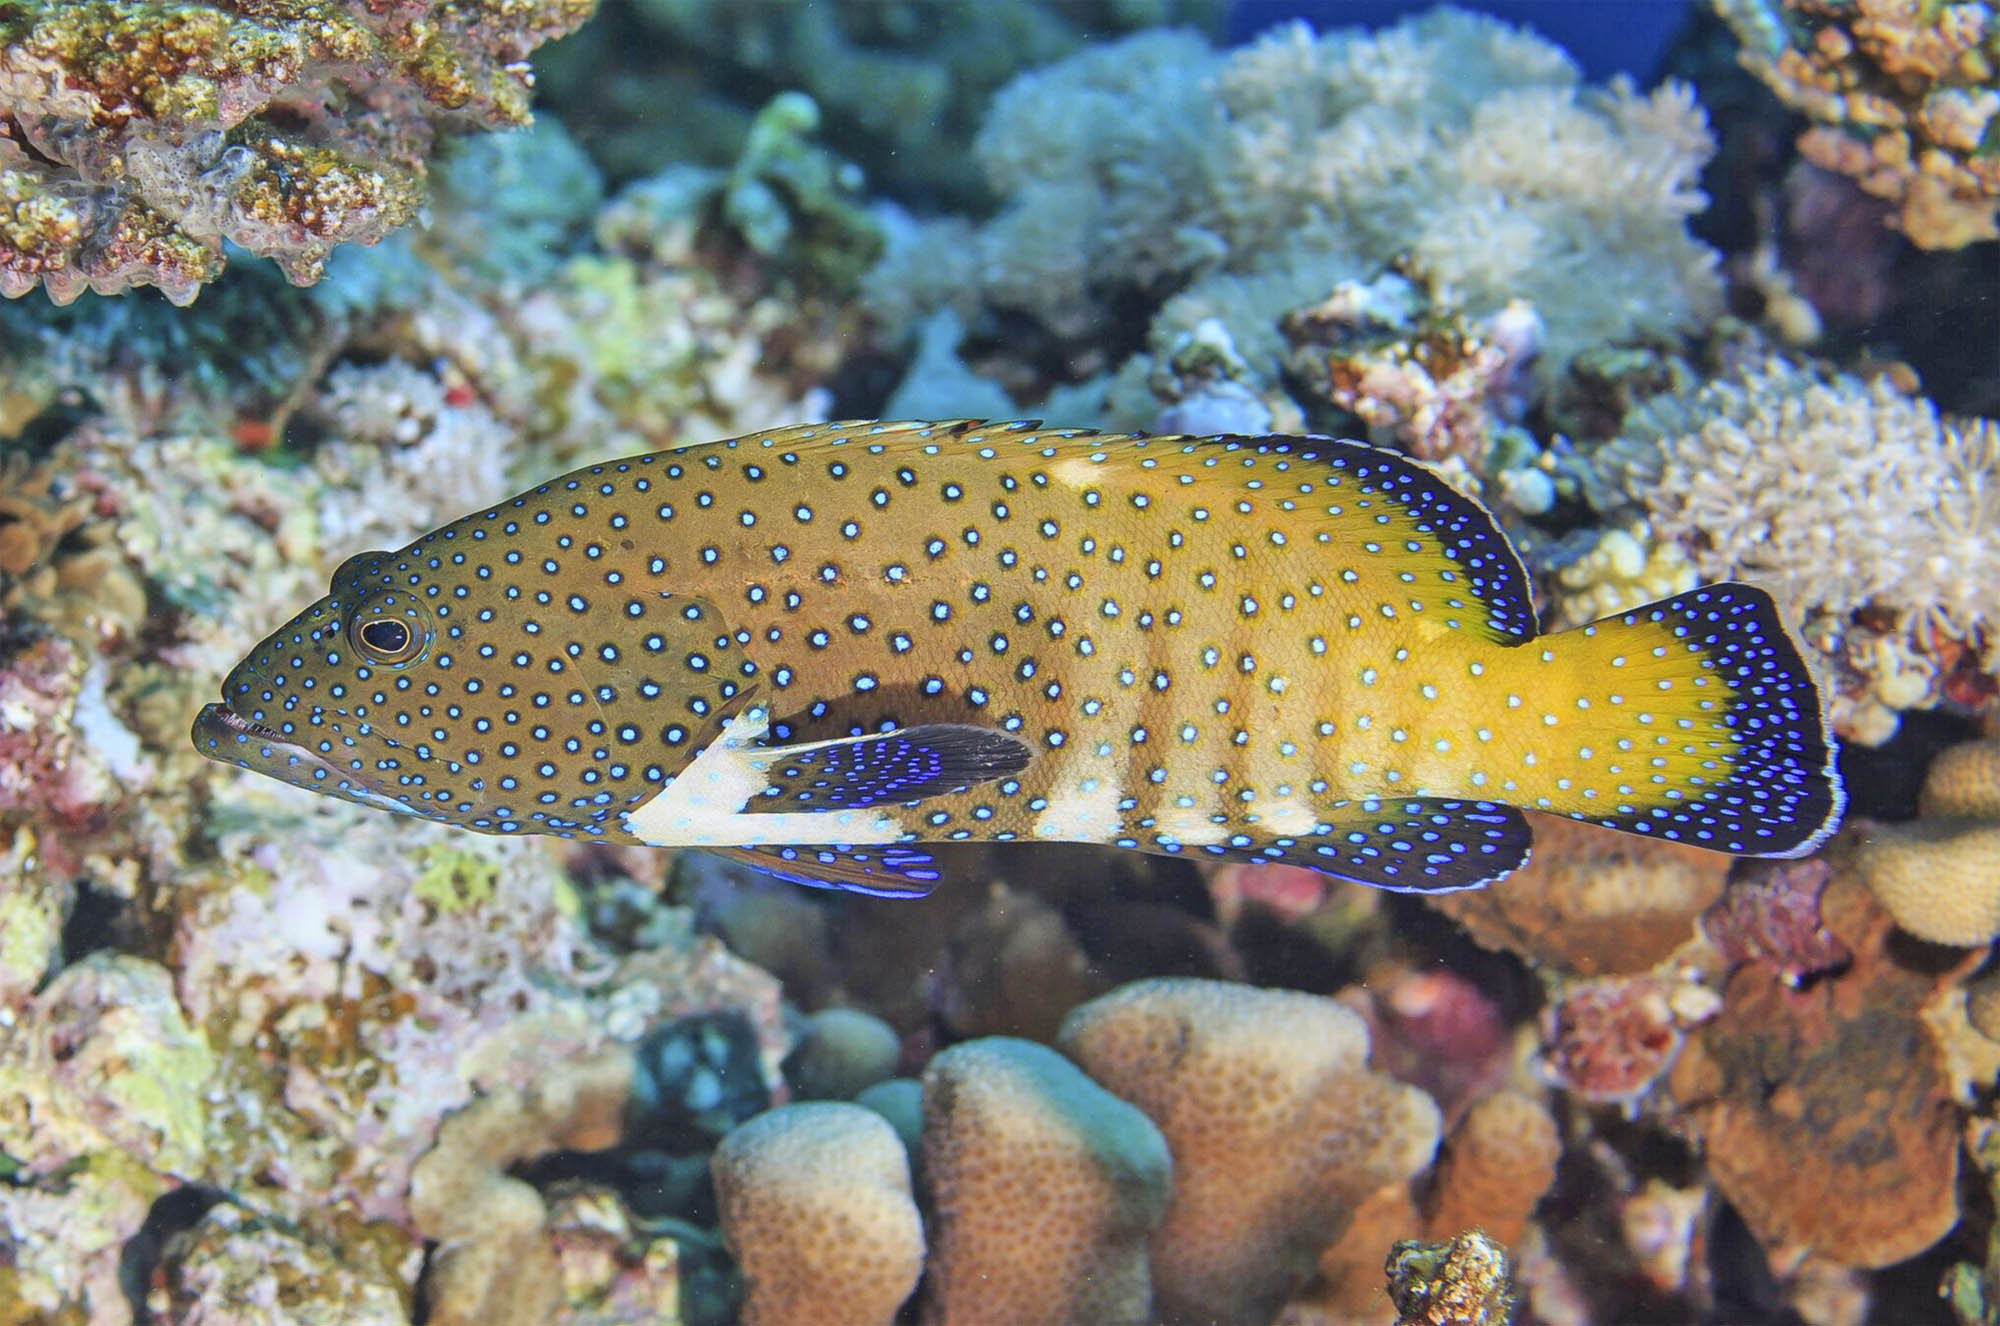 Conservation scientists protect fish at the island of Pohnpei